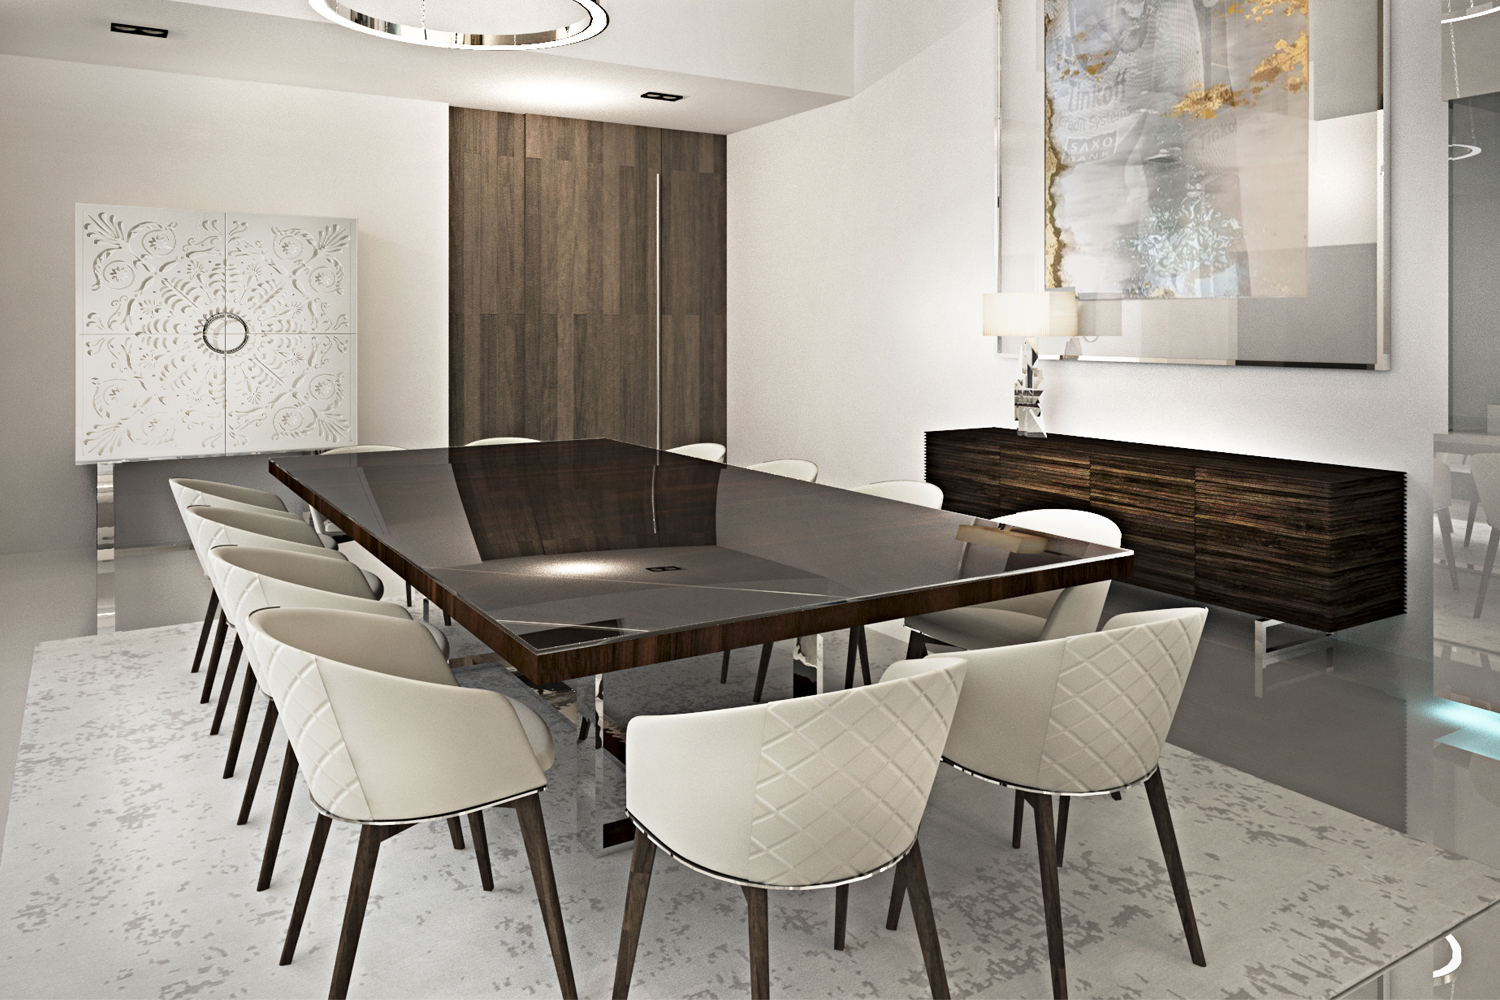 Contemporary Dining Room Sets, Luxury Dining Room Sets, Modern Dining Room  Table, Contemporary